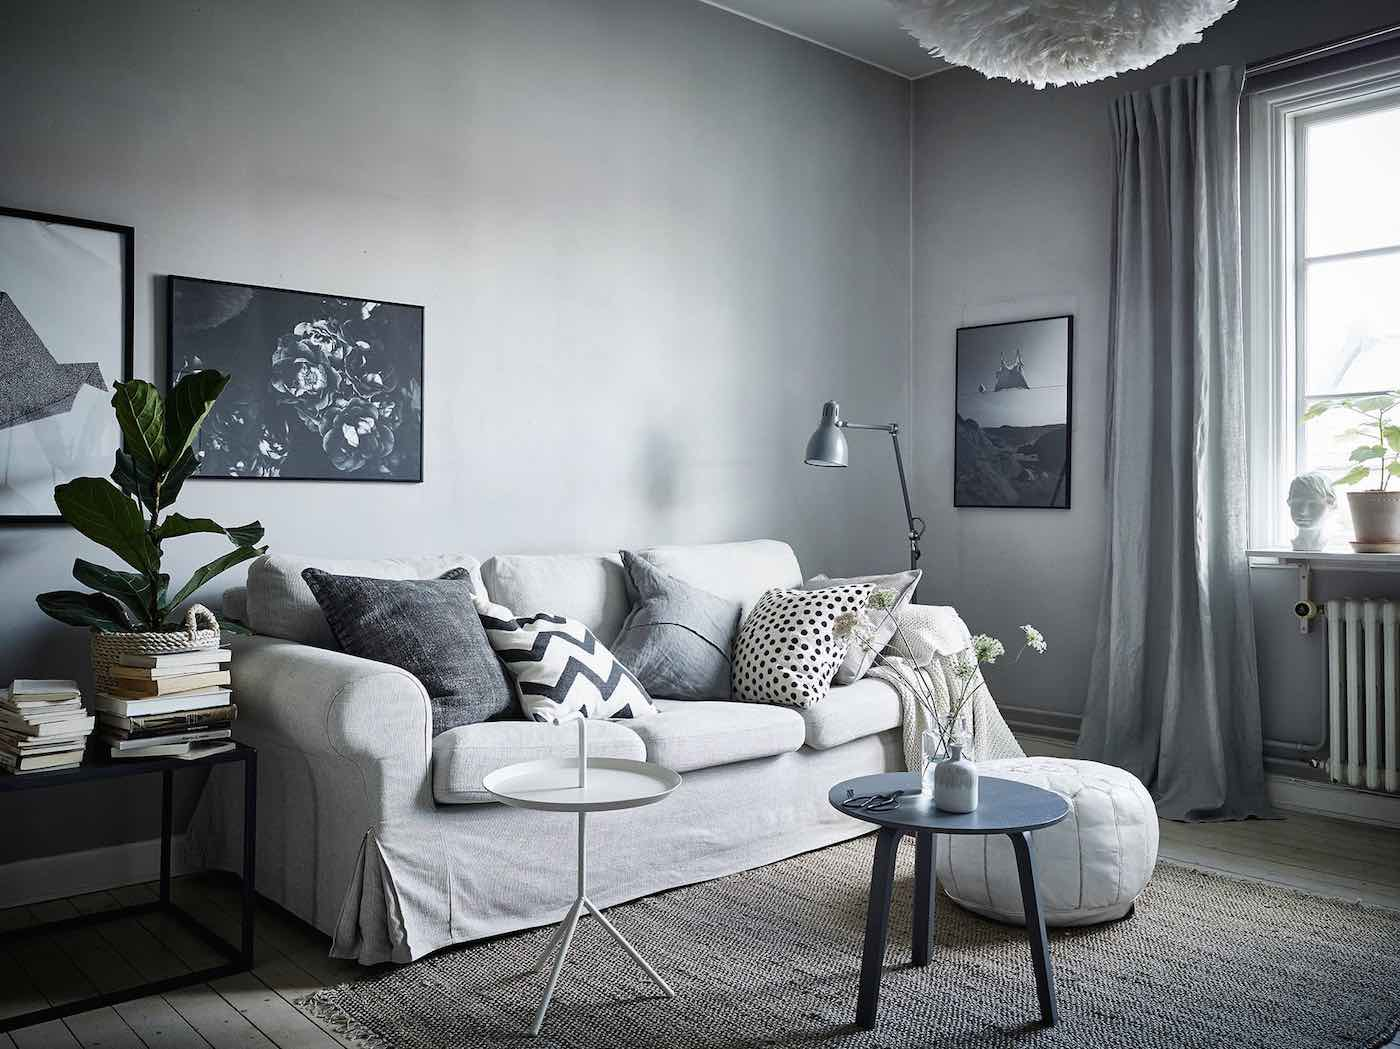 Daily Inspiration- Wohnung in grauer Harmonie - Designs2love